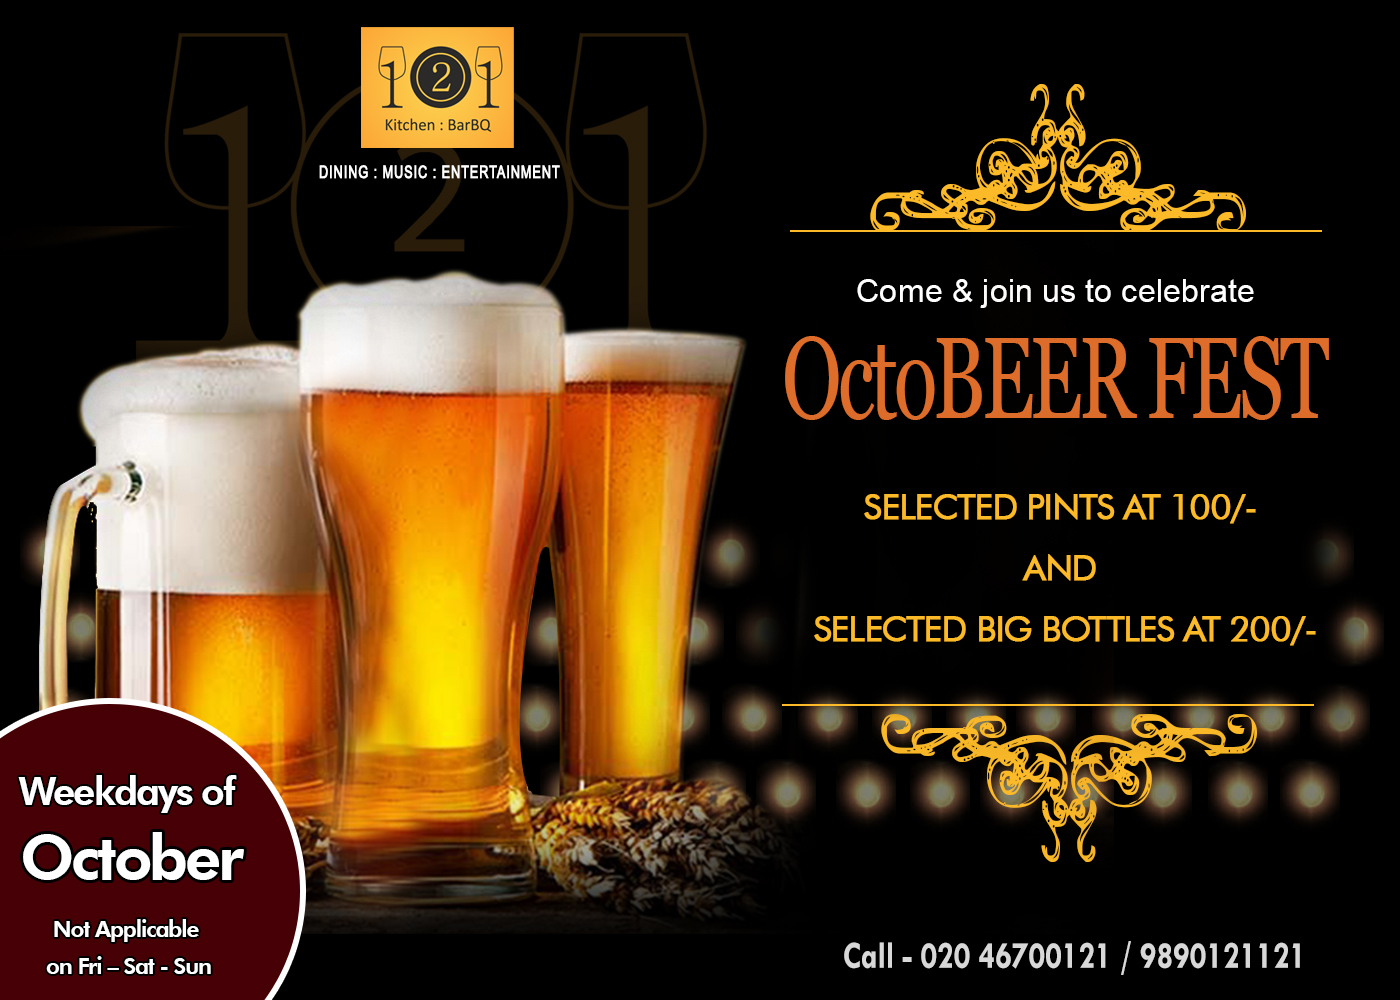 Pune Plan Beer Party at 121 Kitchen : BarBQ This October